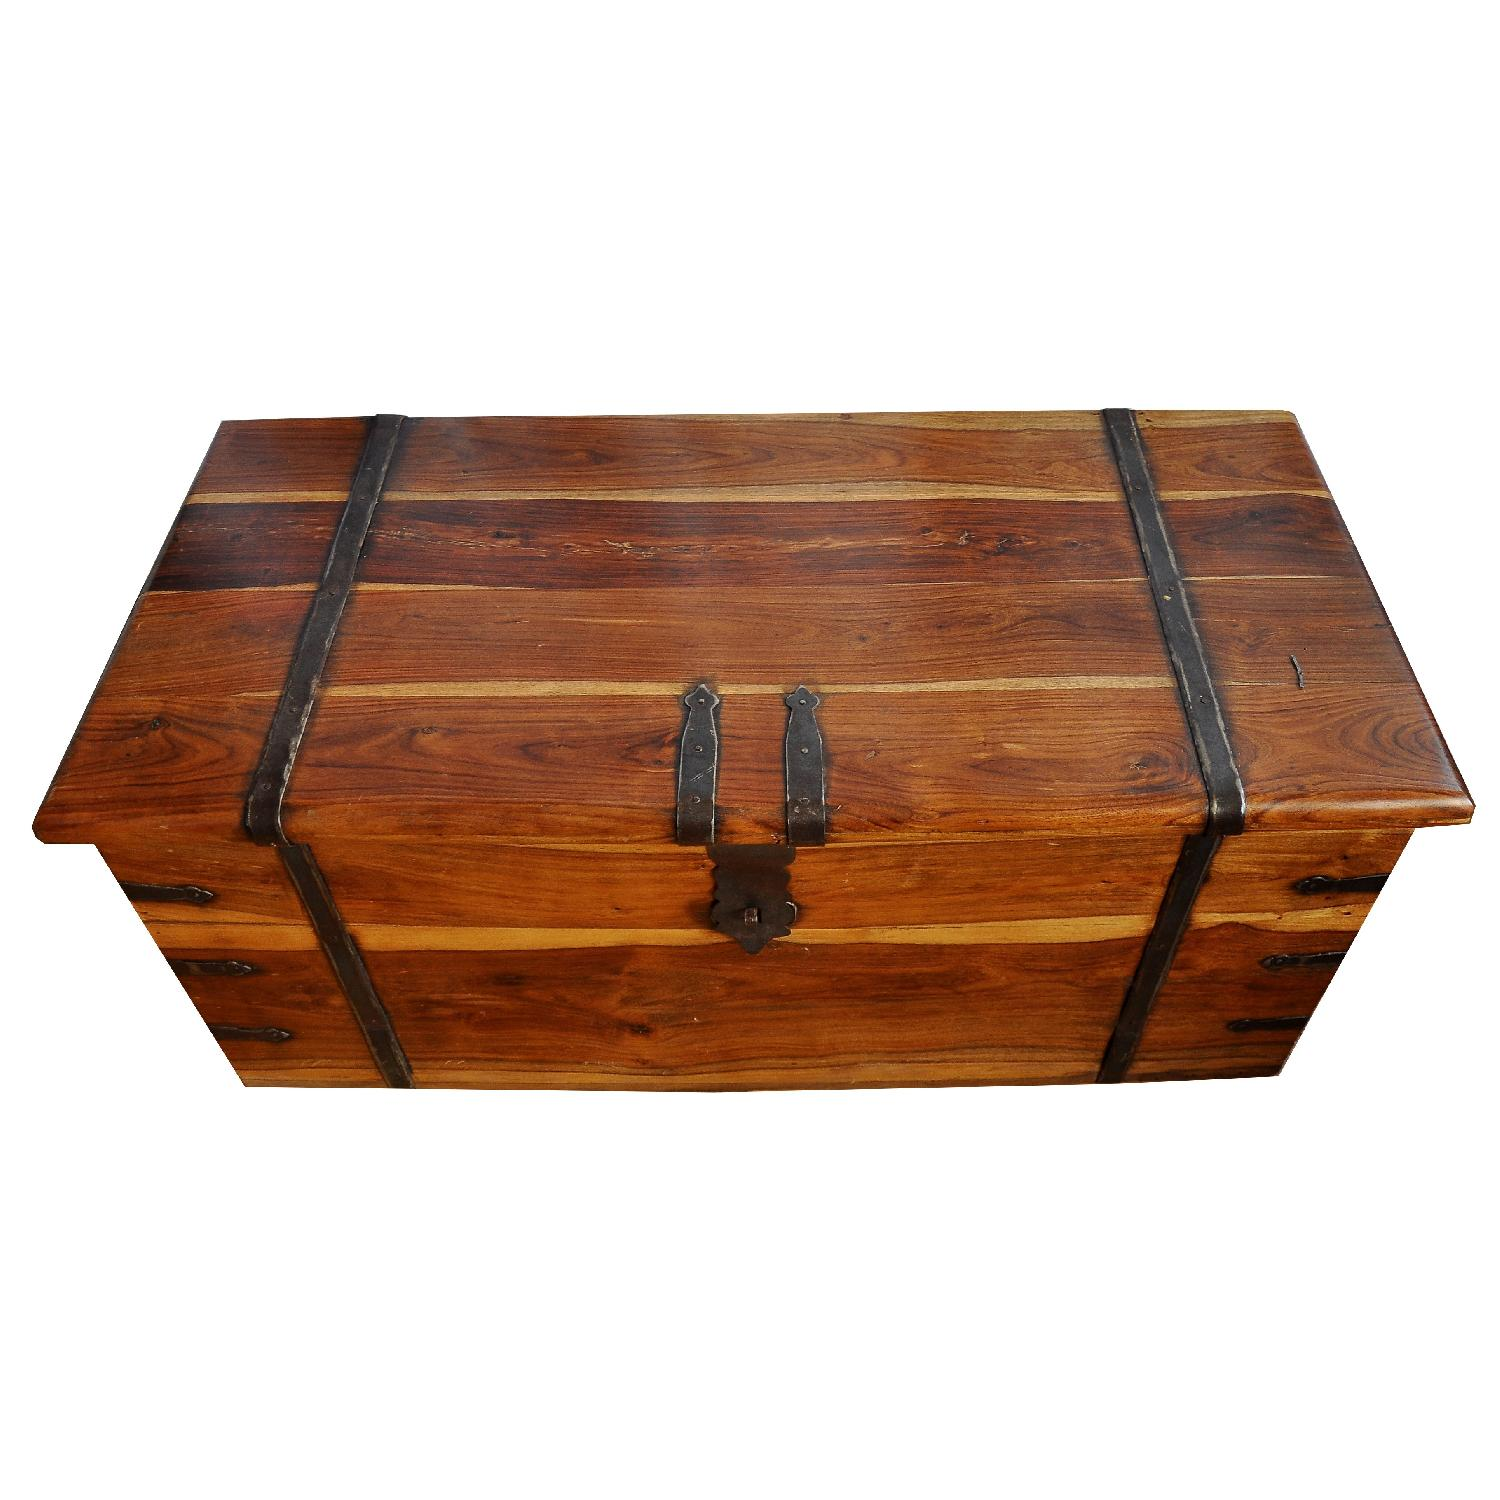 Art Deco Dissected Wood Modern Cocktail Coffee Table AptDeco